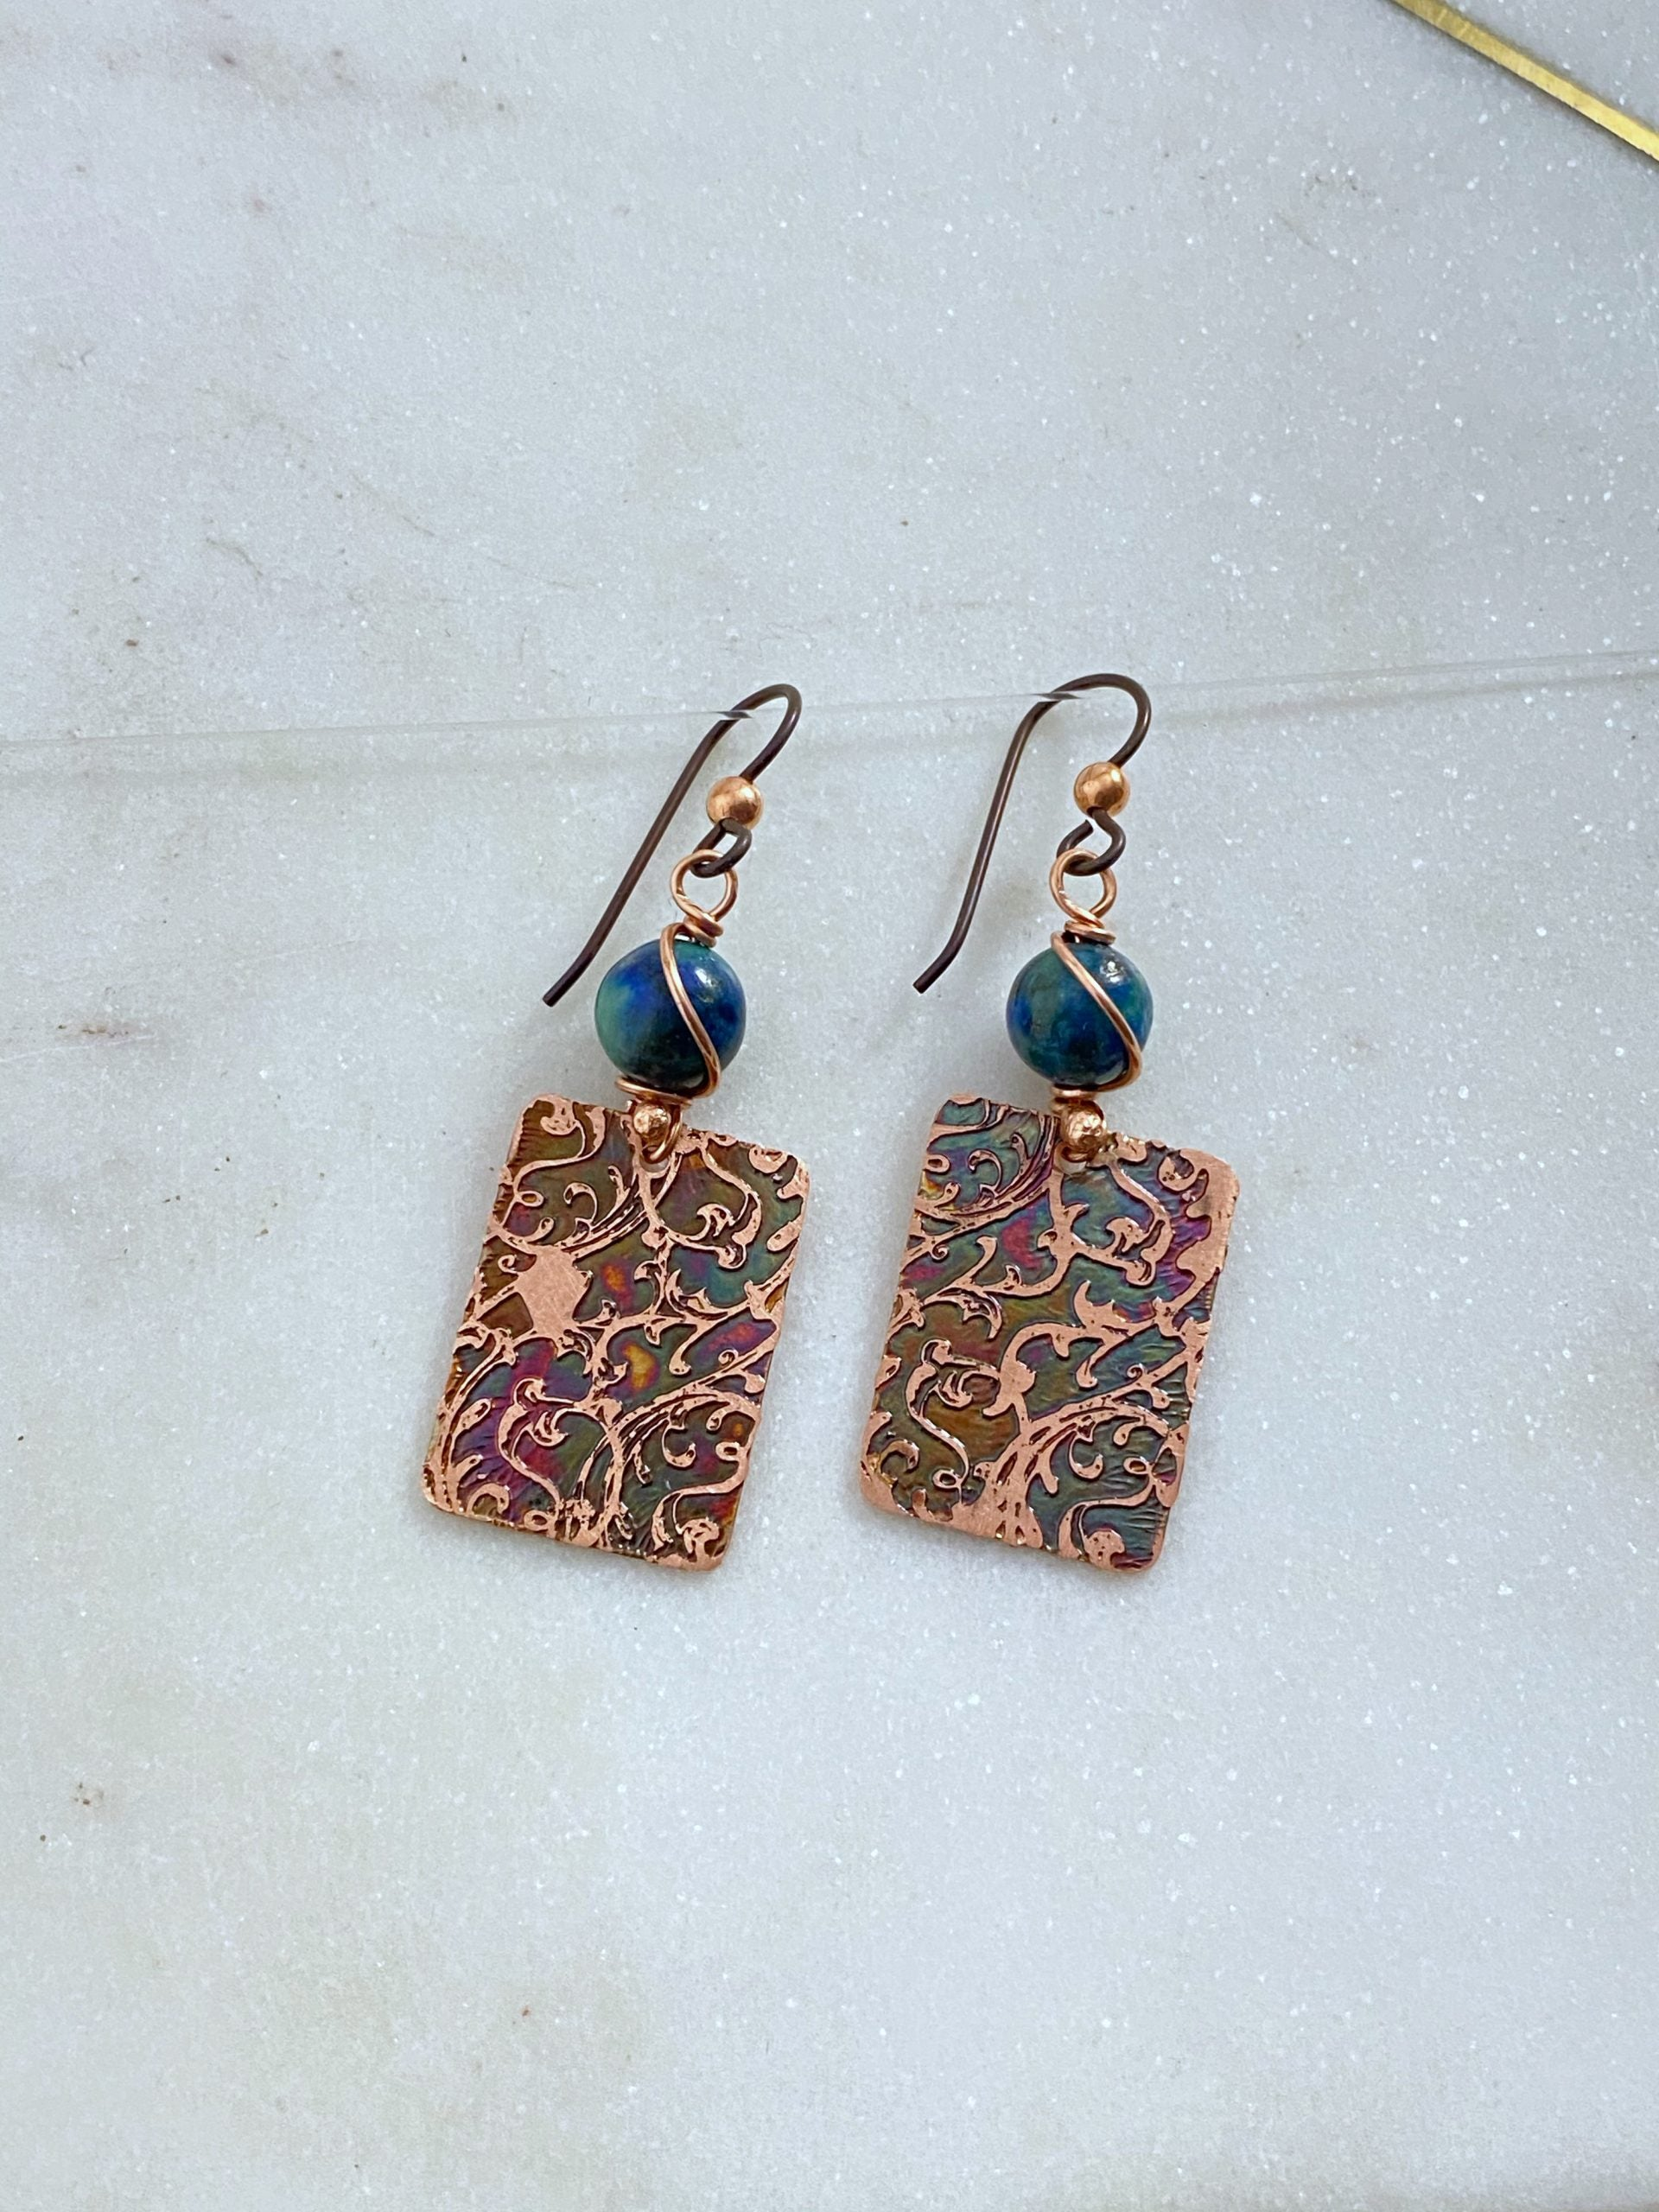 Acid etch copper earrings with azurite chrysocolla